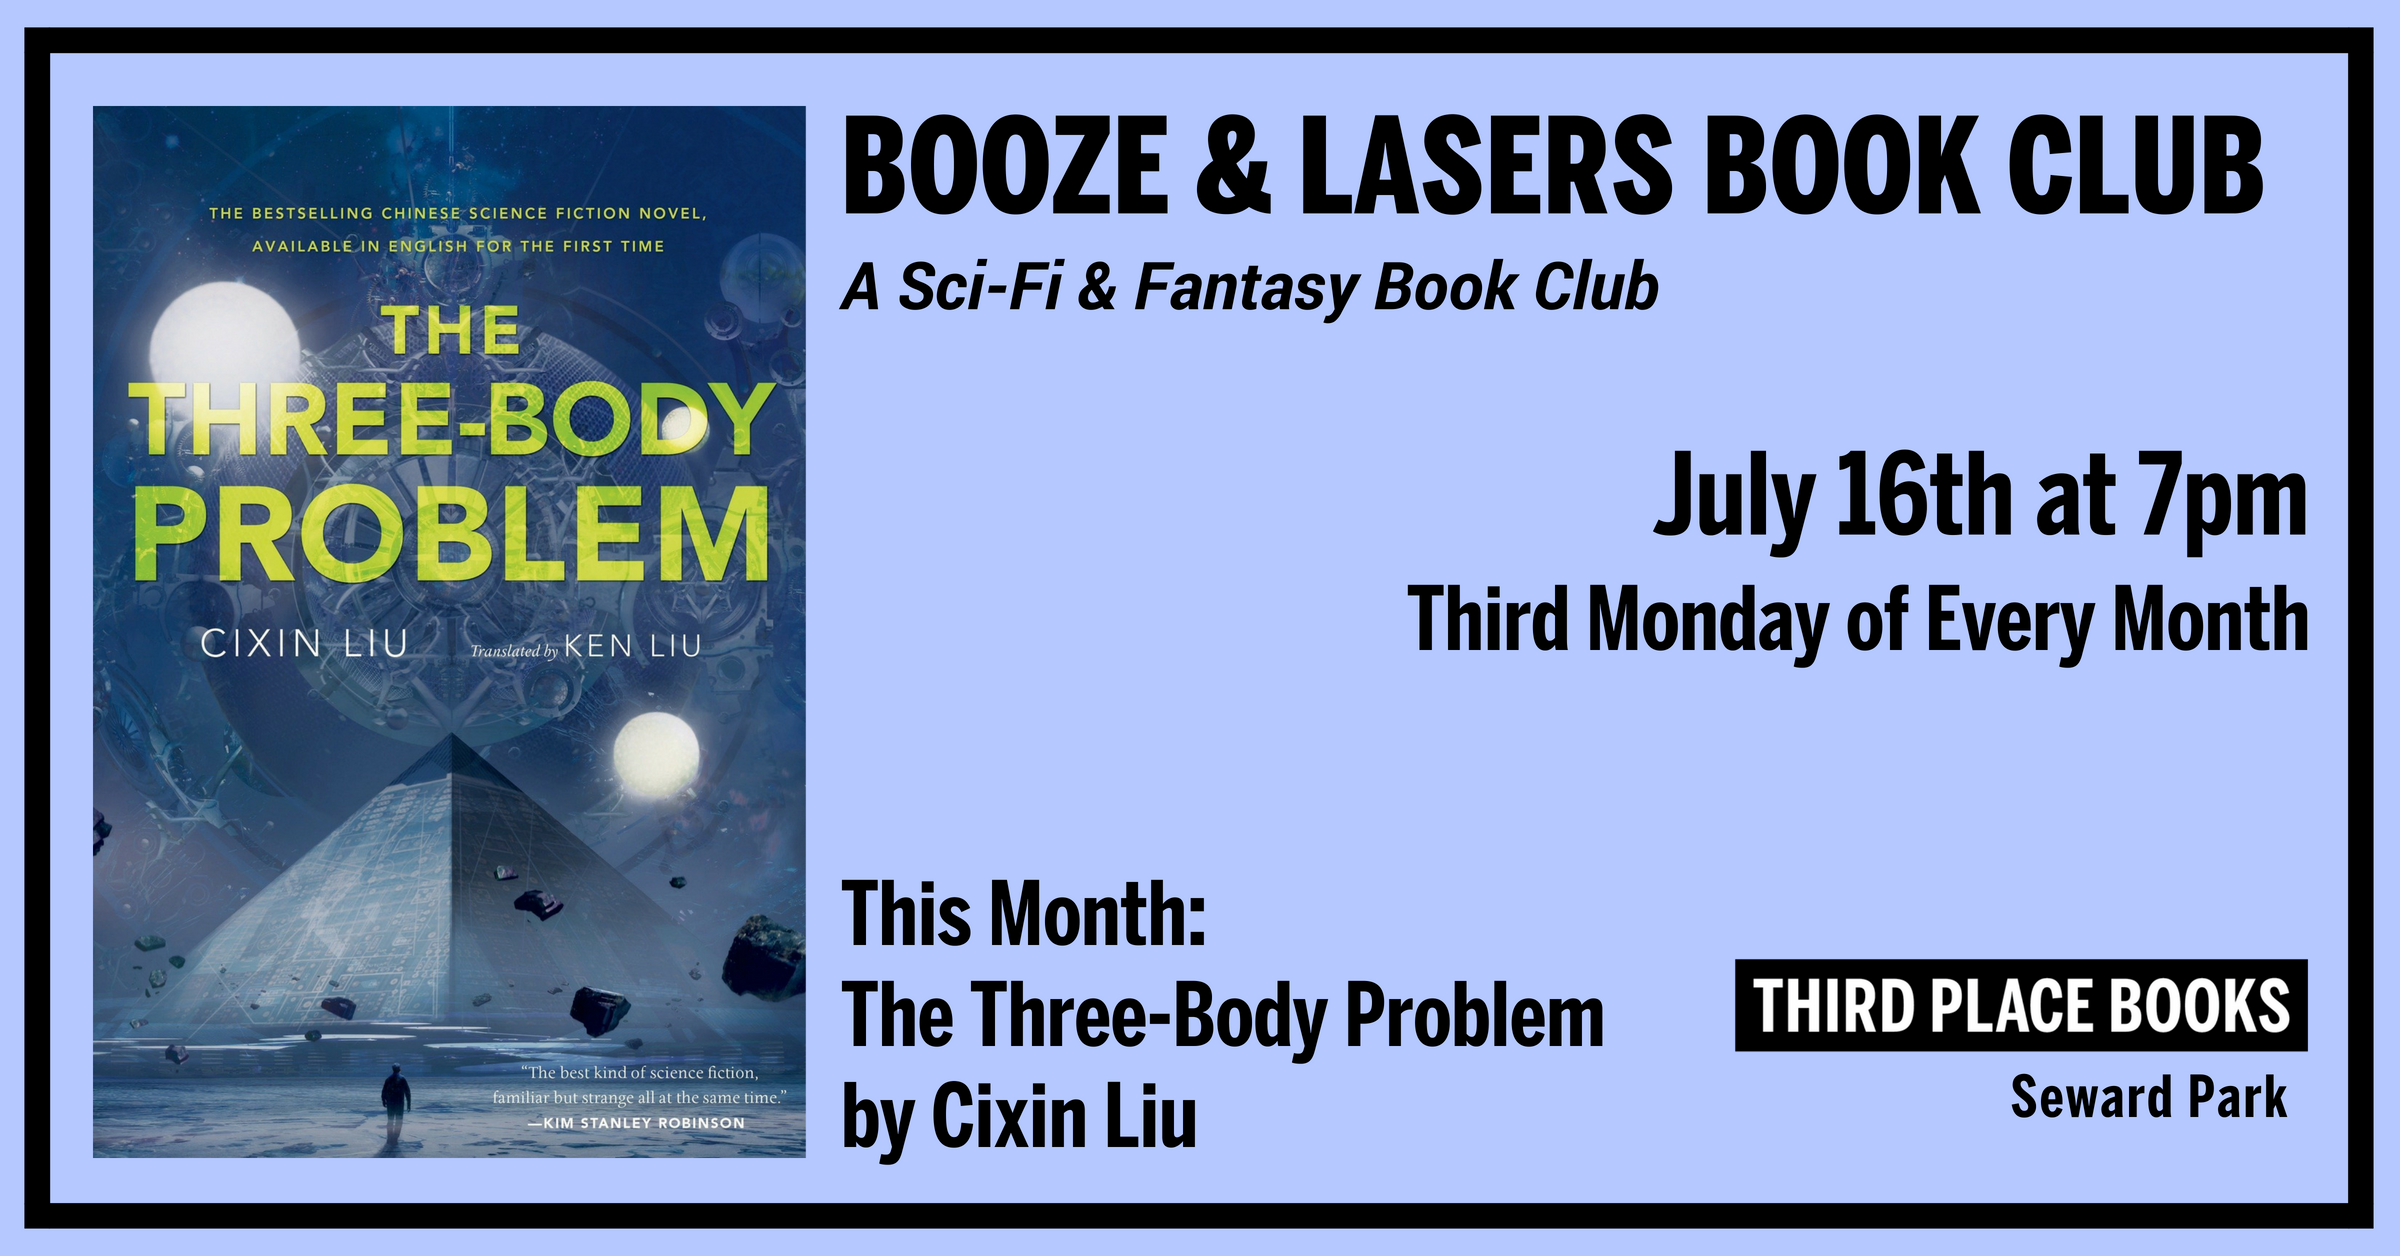 Booze & Lasers Book Club reading The Three-Body Problem by Cixin Liu on Monday, July 16th at 7pm